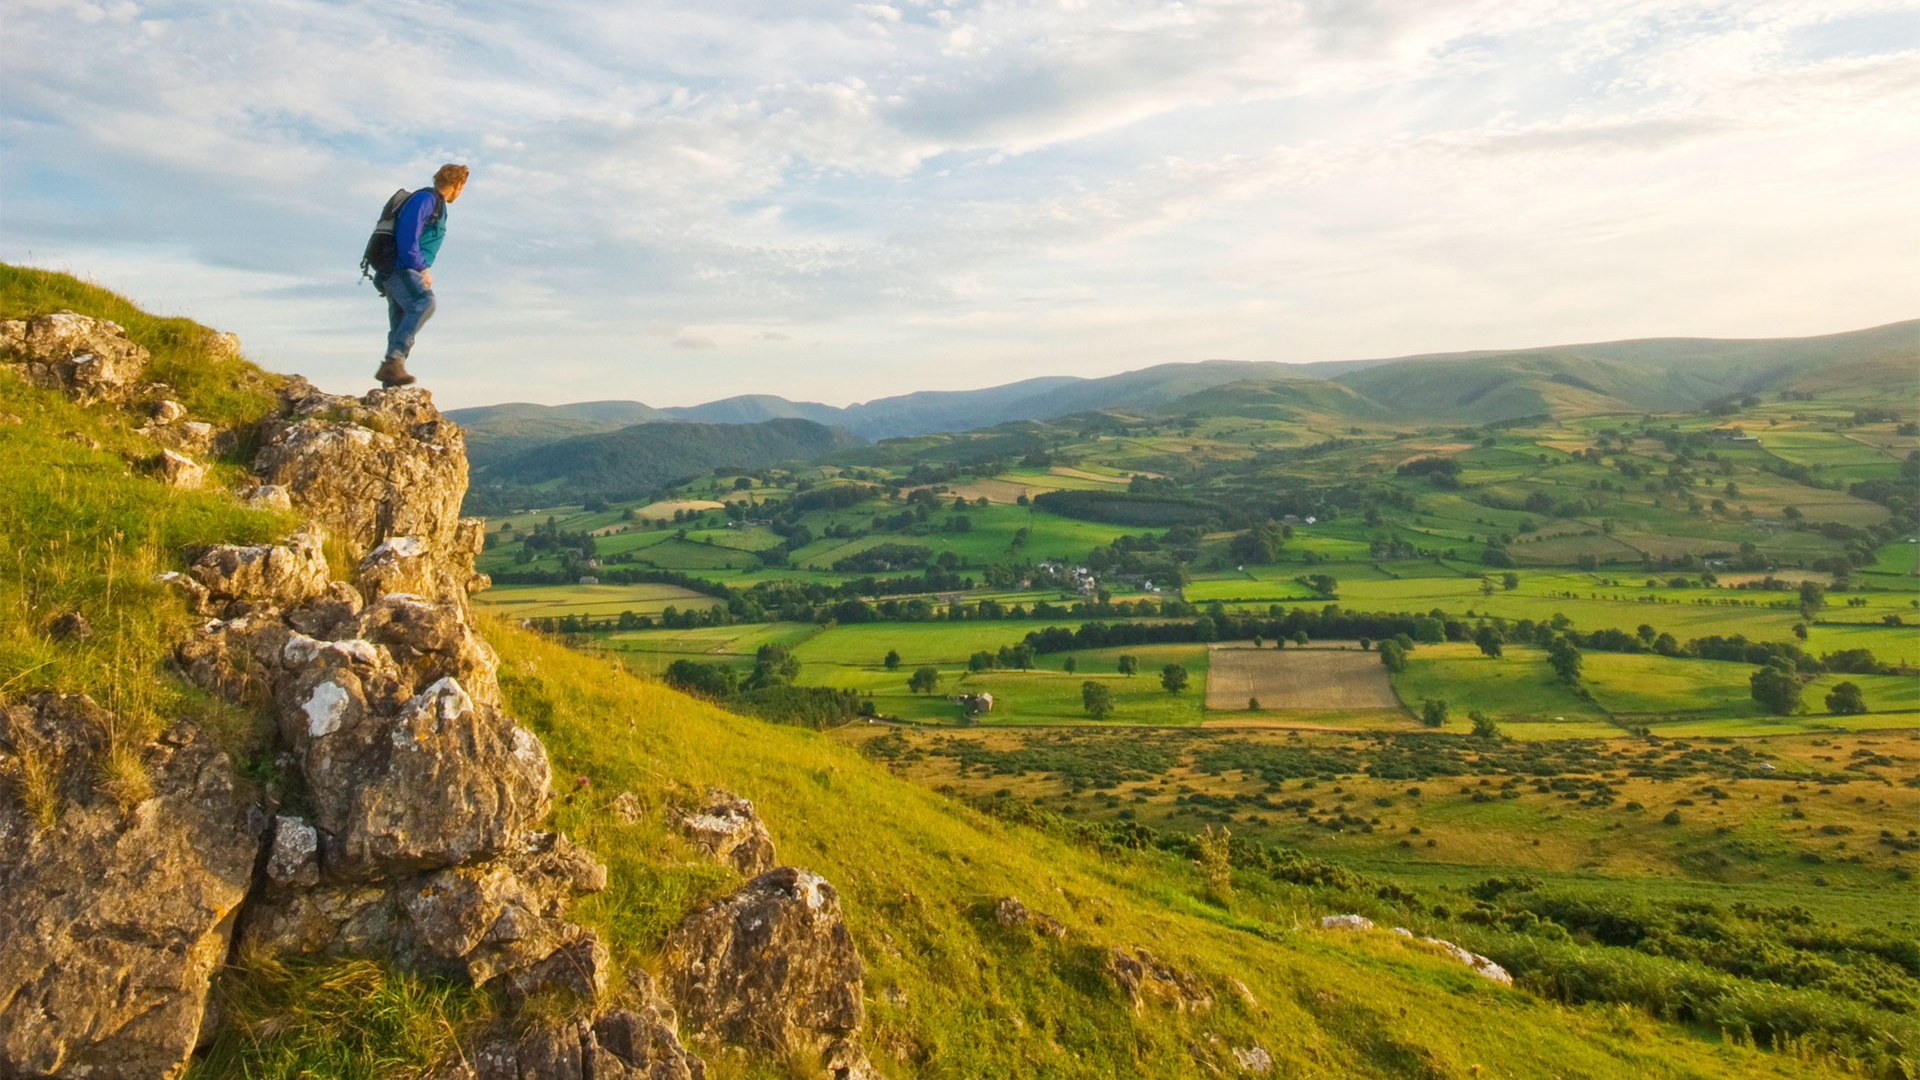 Hiker standing at the top of knipe scar